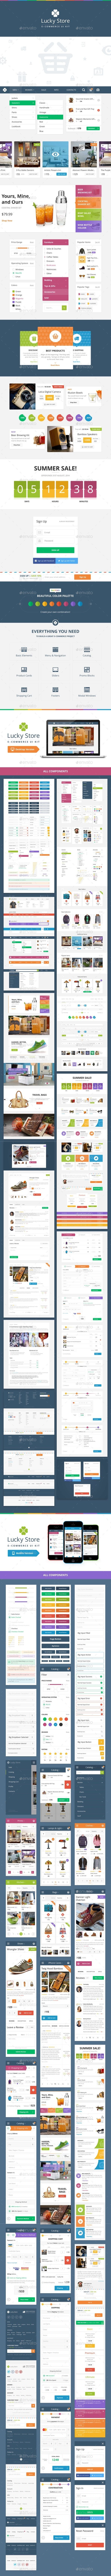 Lucky Store — Web & Mobile Ecommerce UI Kit — Photoshop PSD #ui #user interface • Download ➝ https://graphicriver.net/item/lucky-store-web-mobile-ecommerce-ui-kit/19117092?ref=pxcr